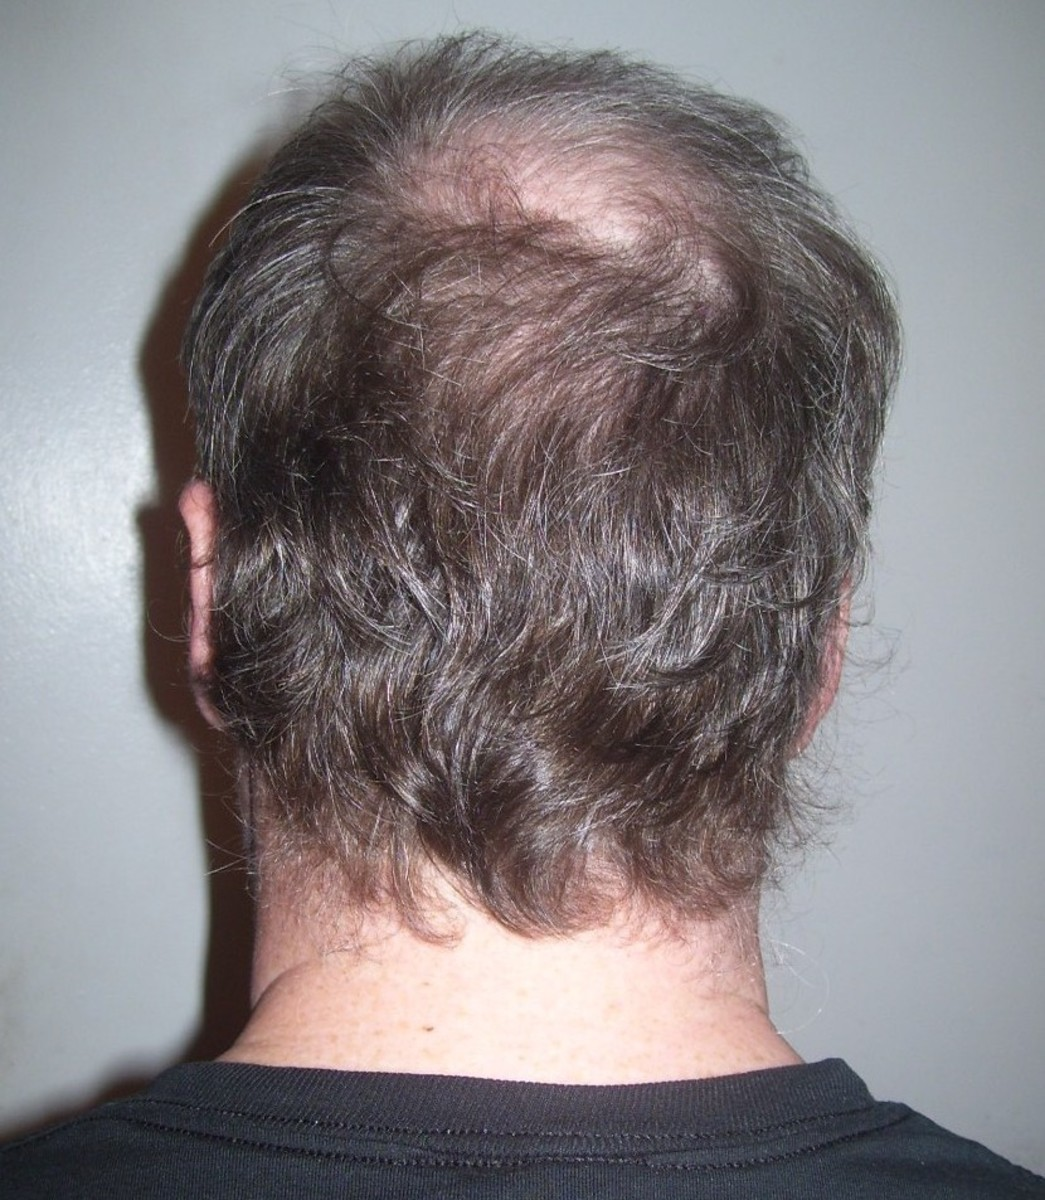 hair-loss-causes-your-bathing-habits-and-hair-products